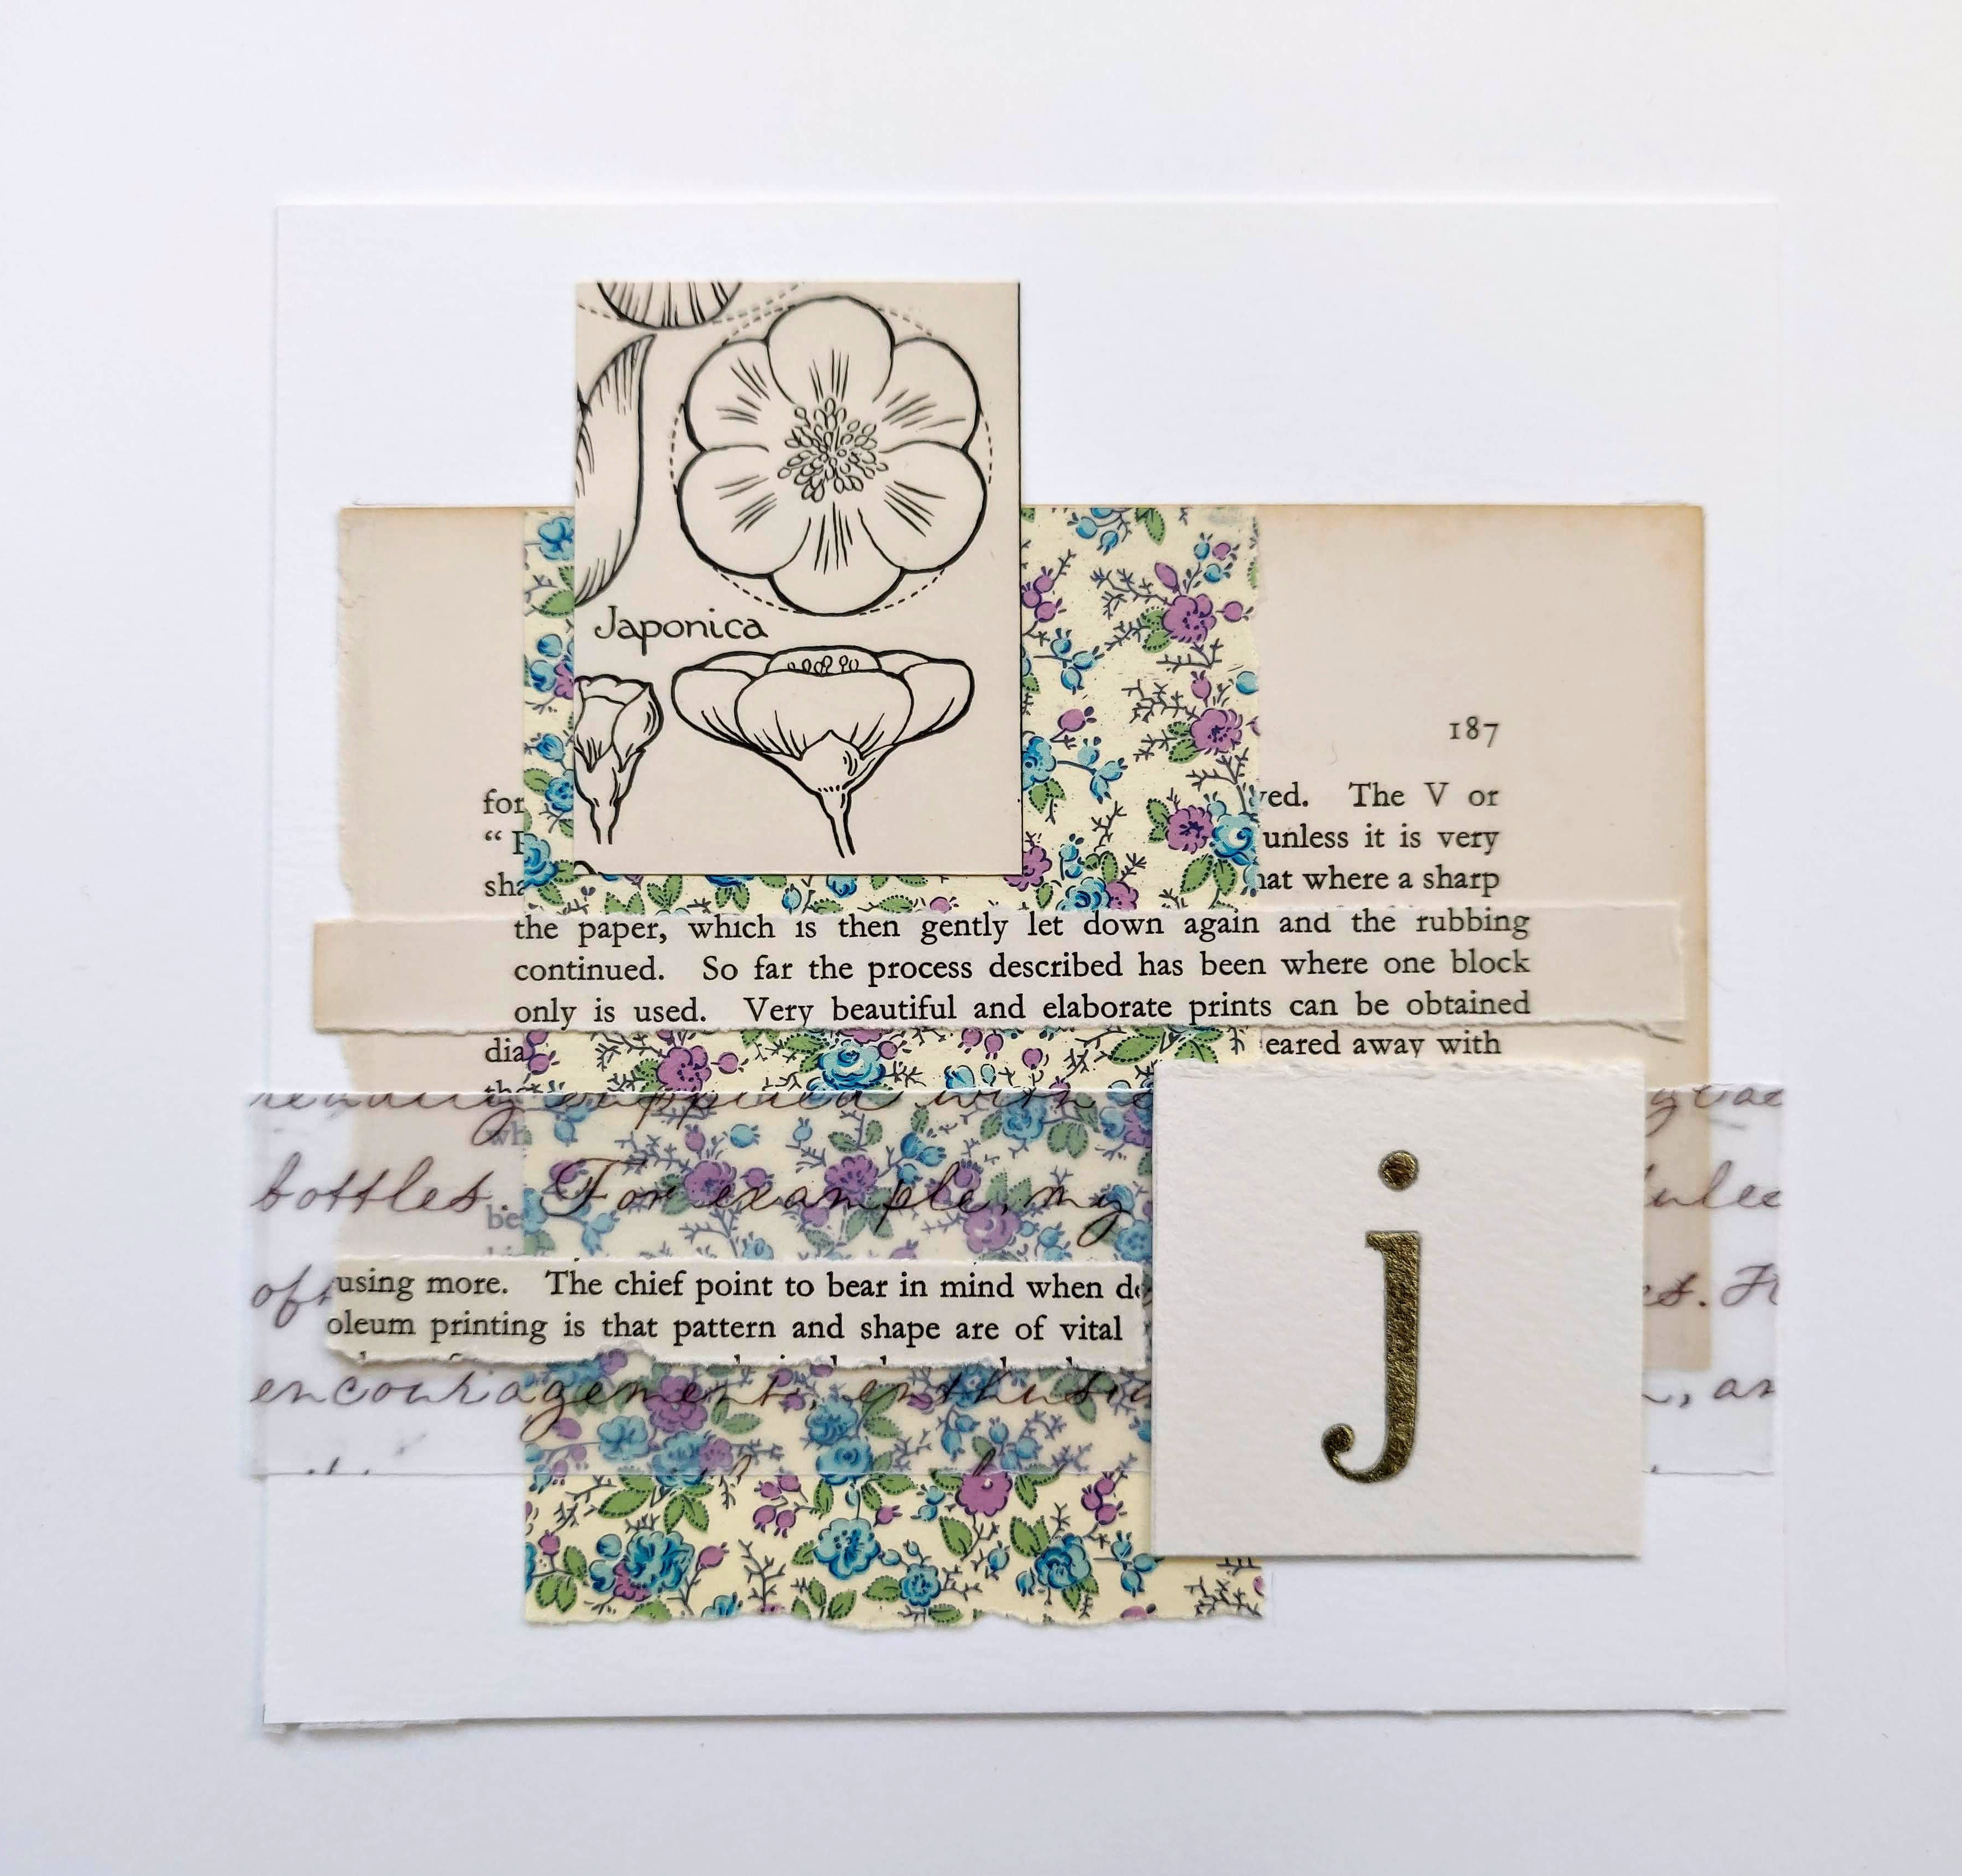 the-letter-j-collage-using-vintage-book-paper-and-gilding